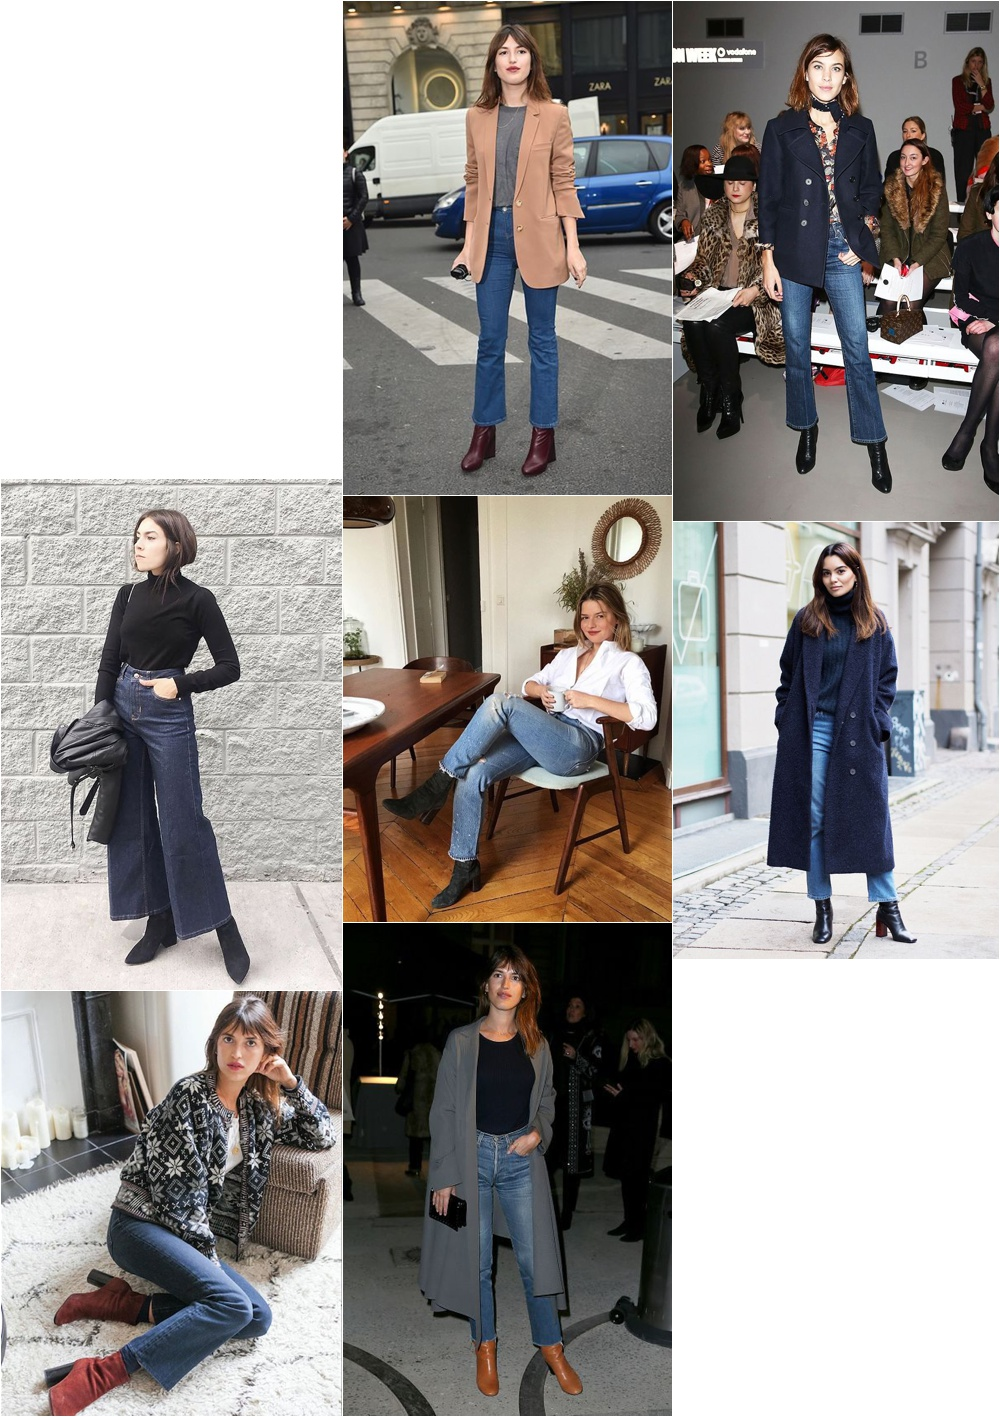 a6d59eea7 How to Style Ankle Boots + Non-Skinny Jeans (Bonus: Warm Ankles ...